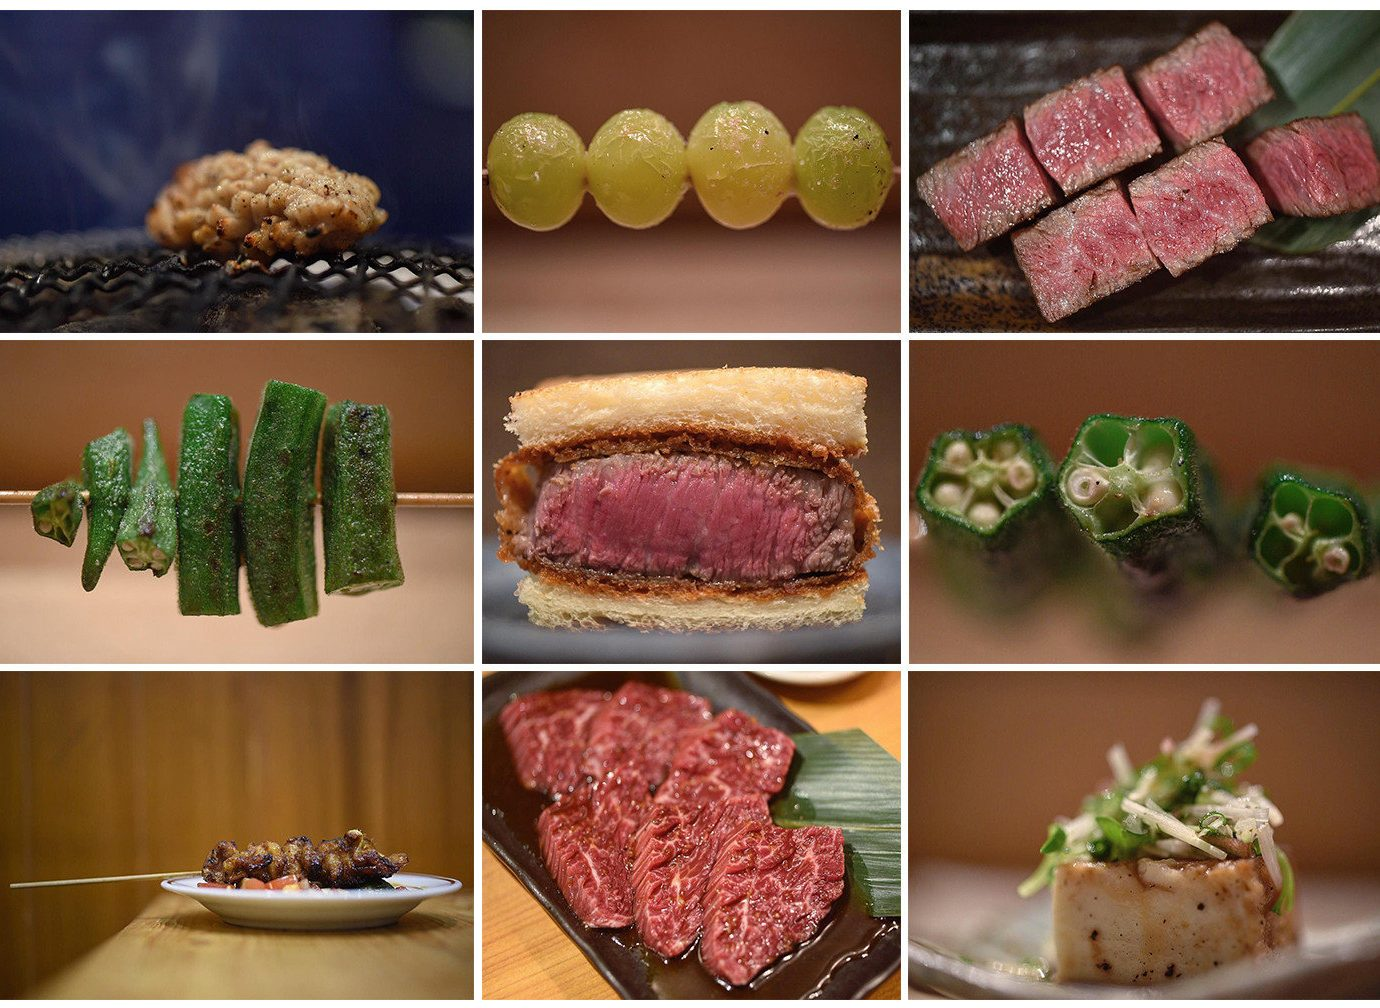 Food + Drink Influencers + Tastemakers different kobe beef meat food cuisine red meat roast beef venison beef tenderloin dish beef charcuterie animal source foods matsusaka beef flat iron steak steak flesh recipe colored vegetable